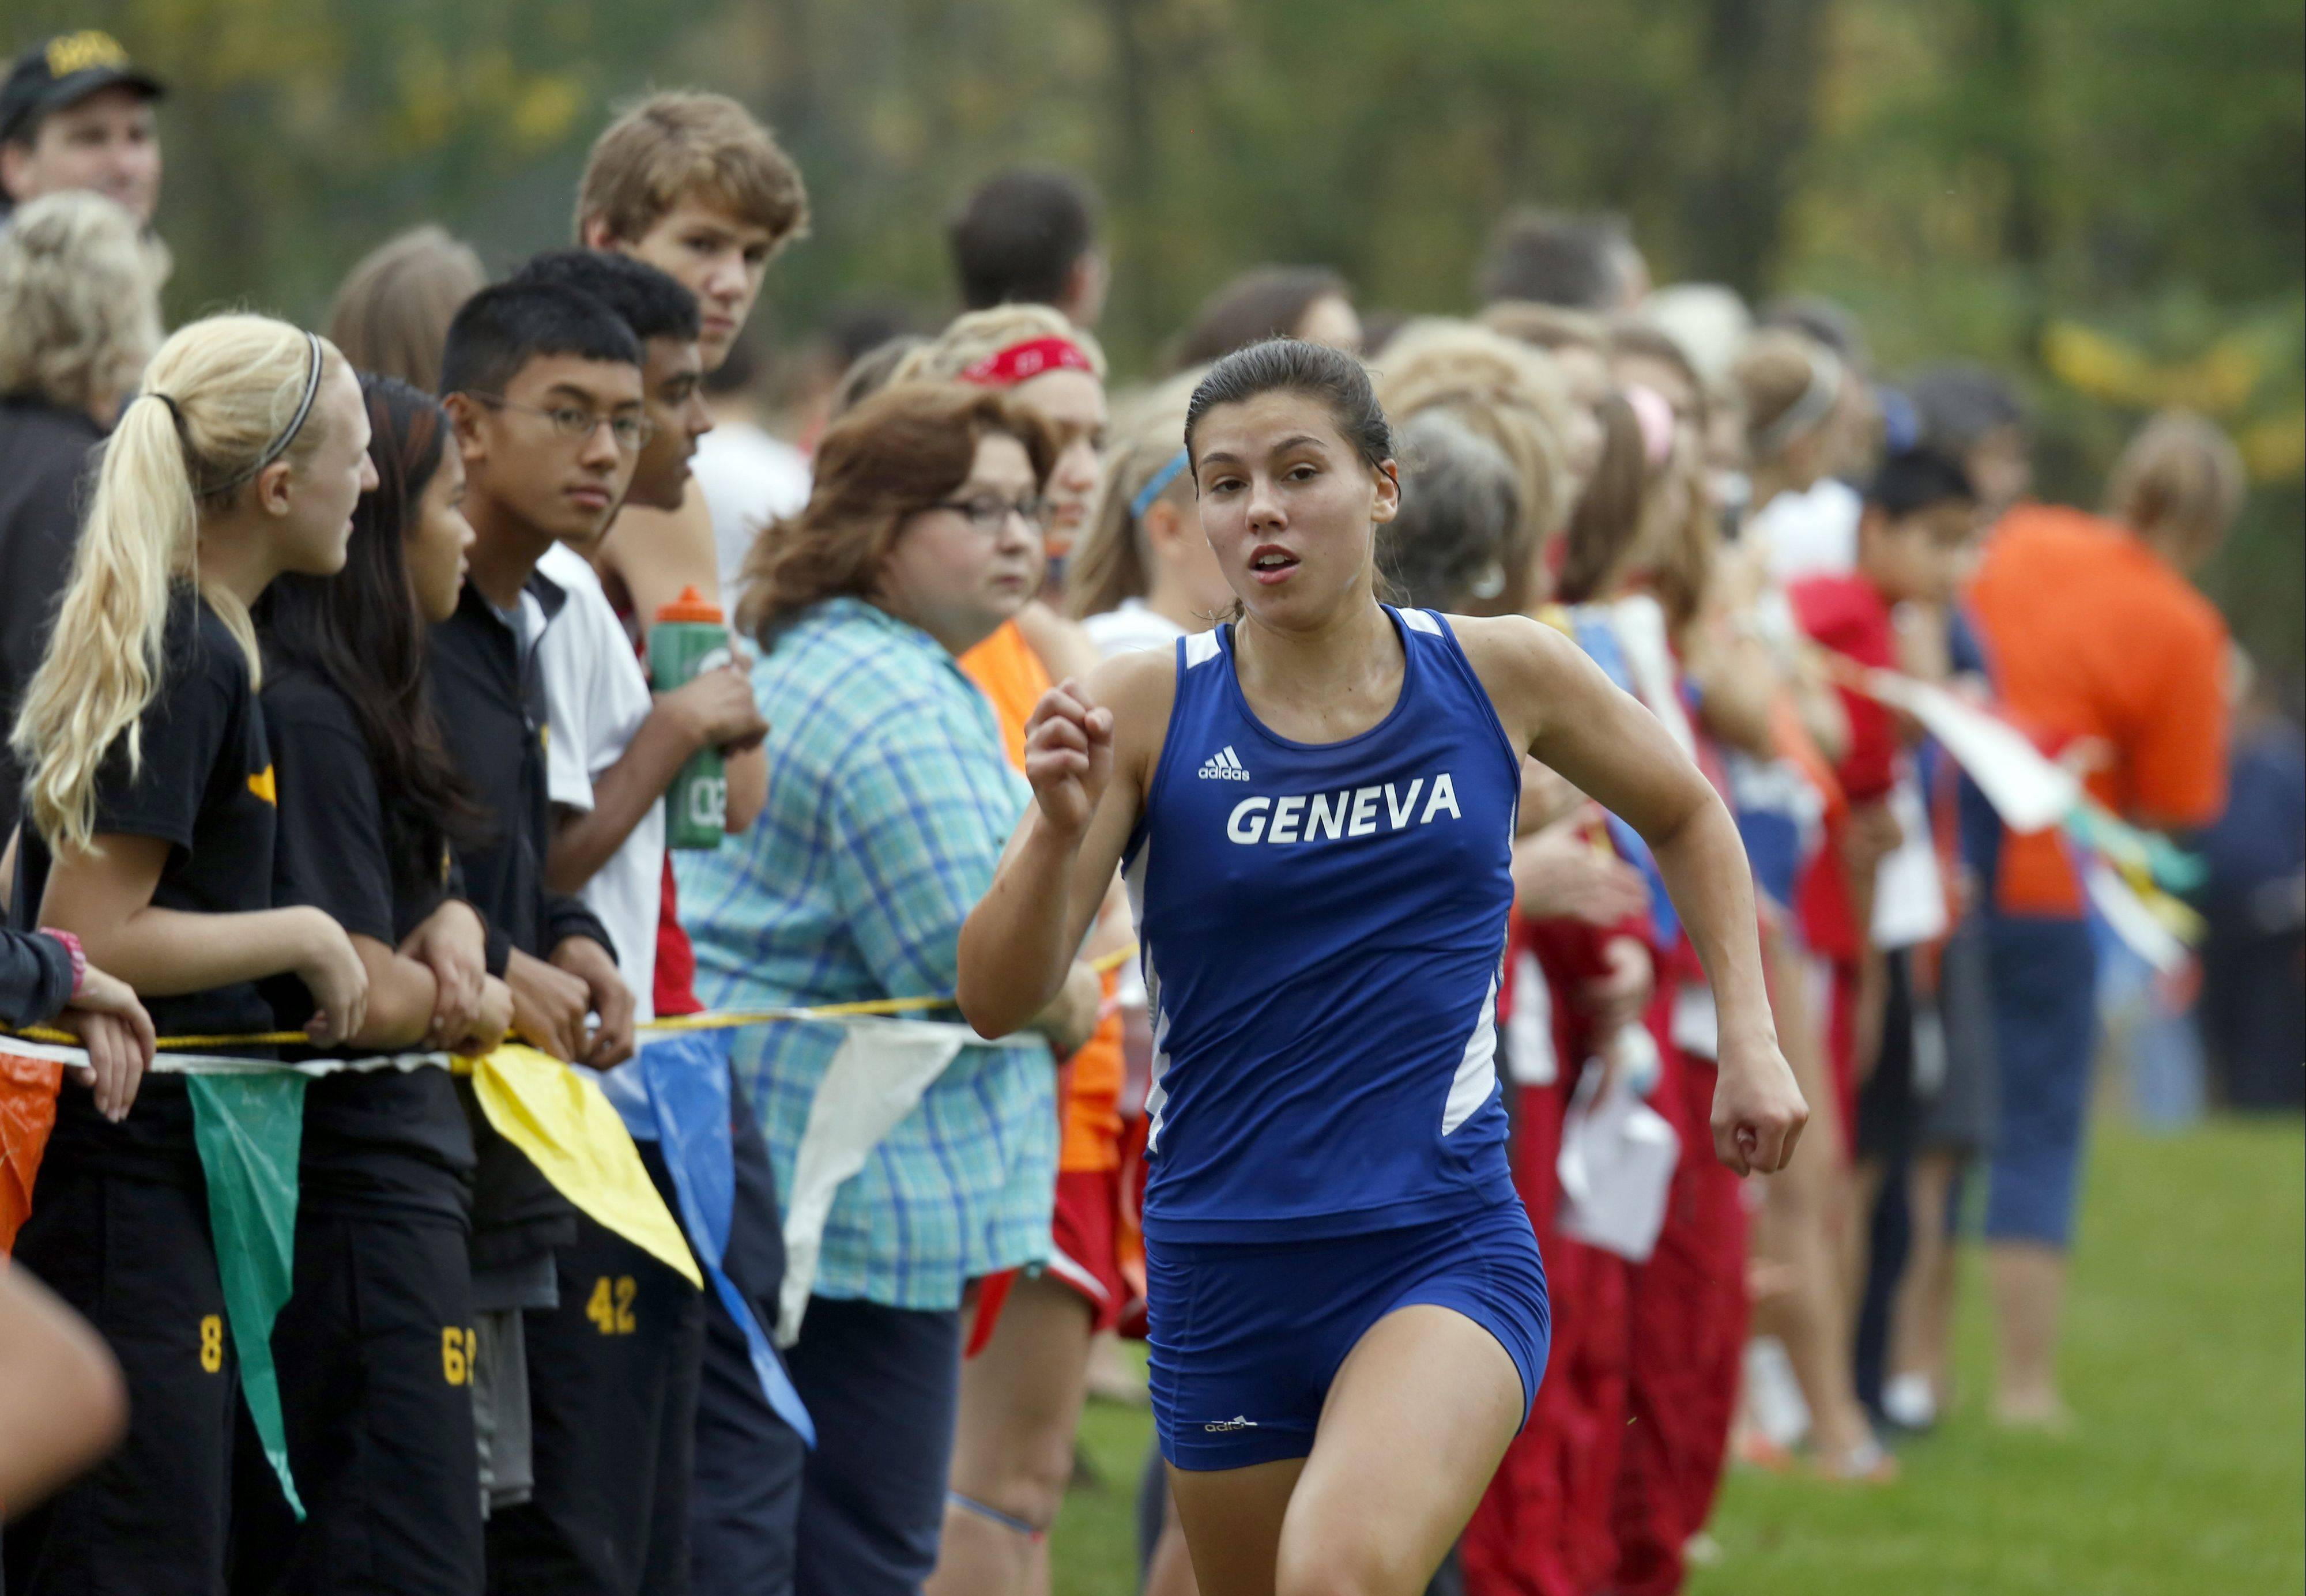 Kathryn Adelman led Geneva in seventh Saturday at the St. Charles North Invitational at LeRoy Oakes in St. Charles.